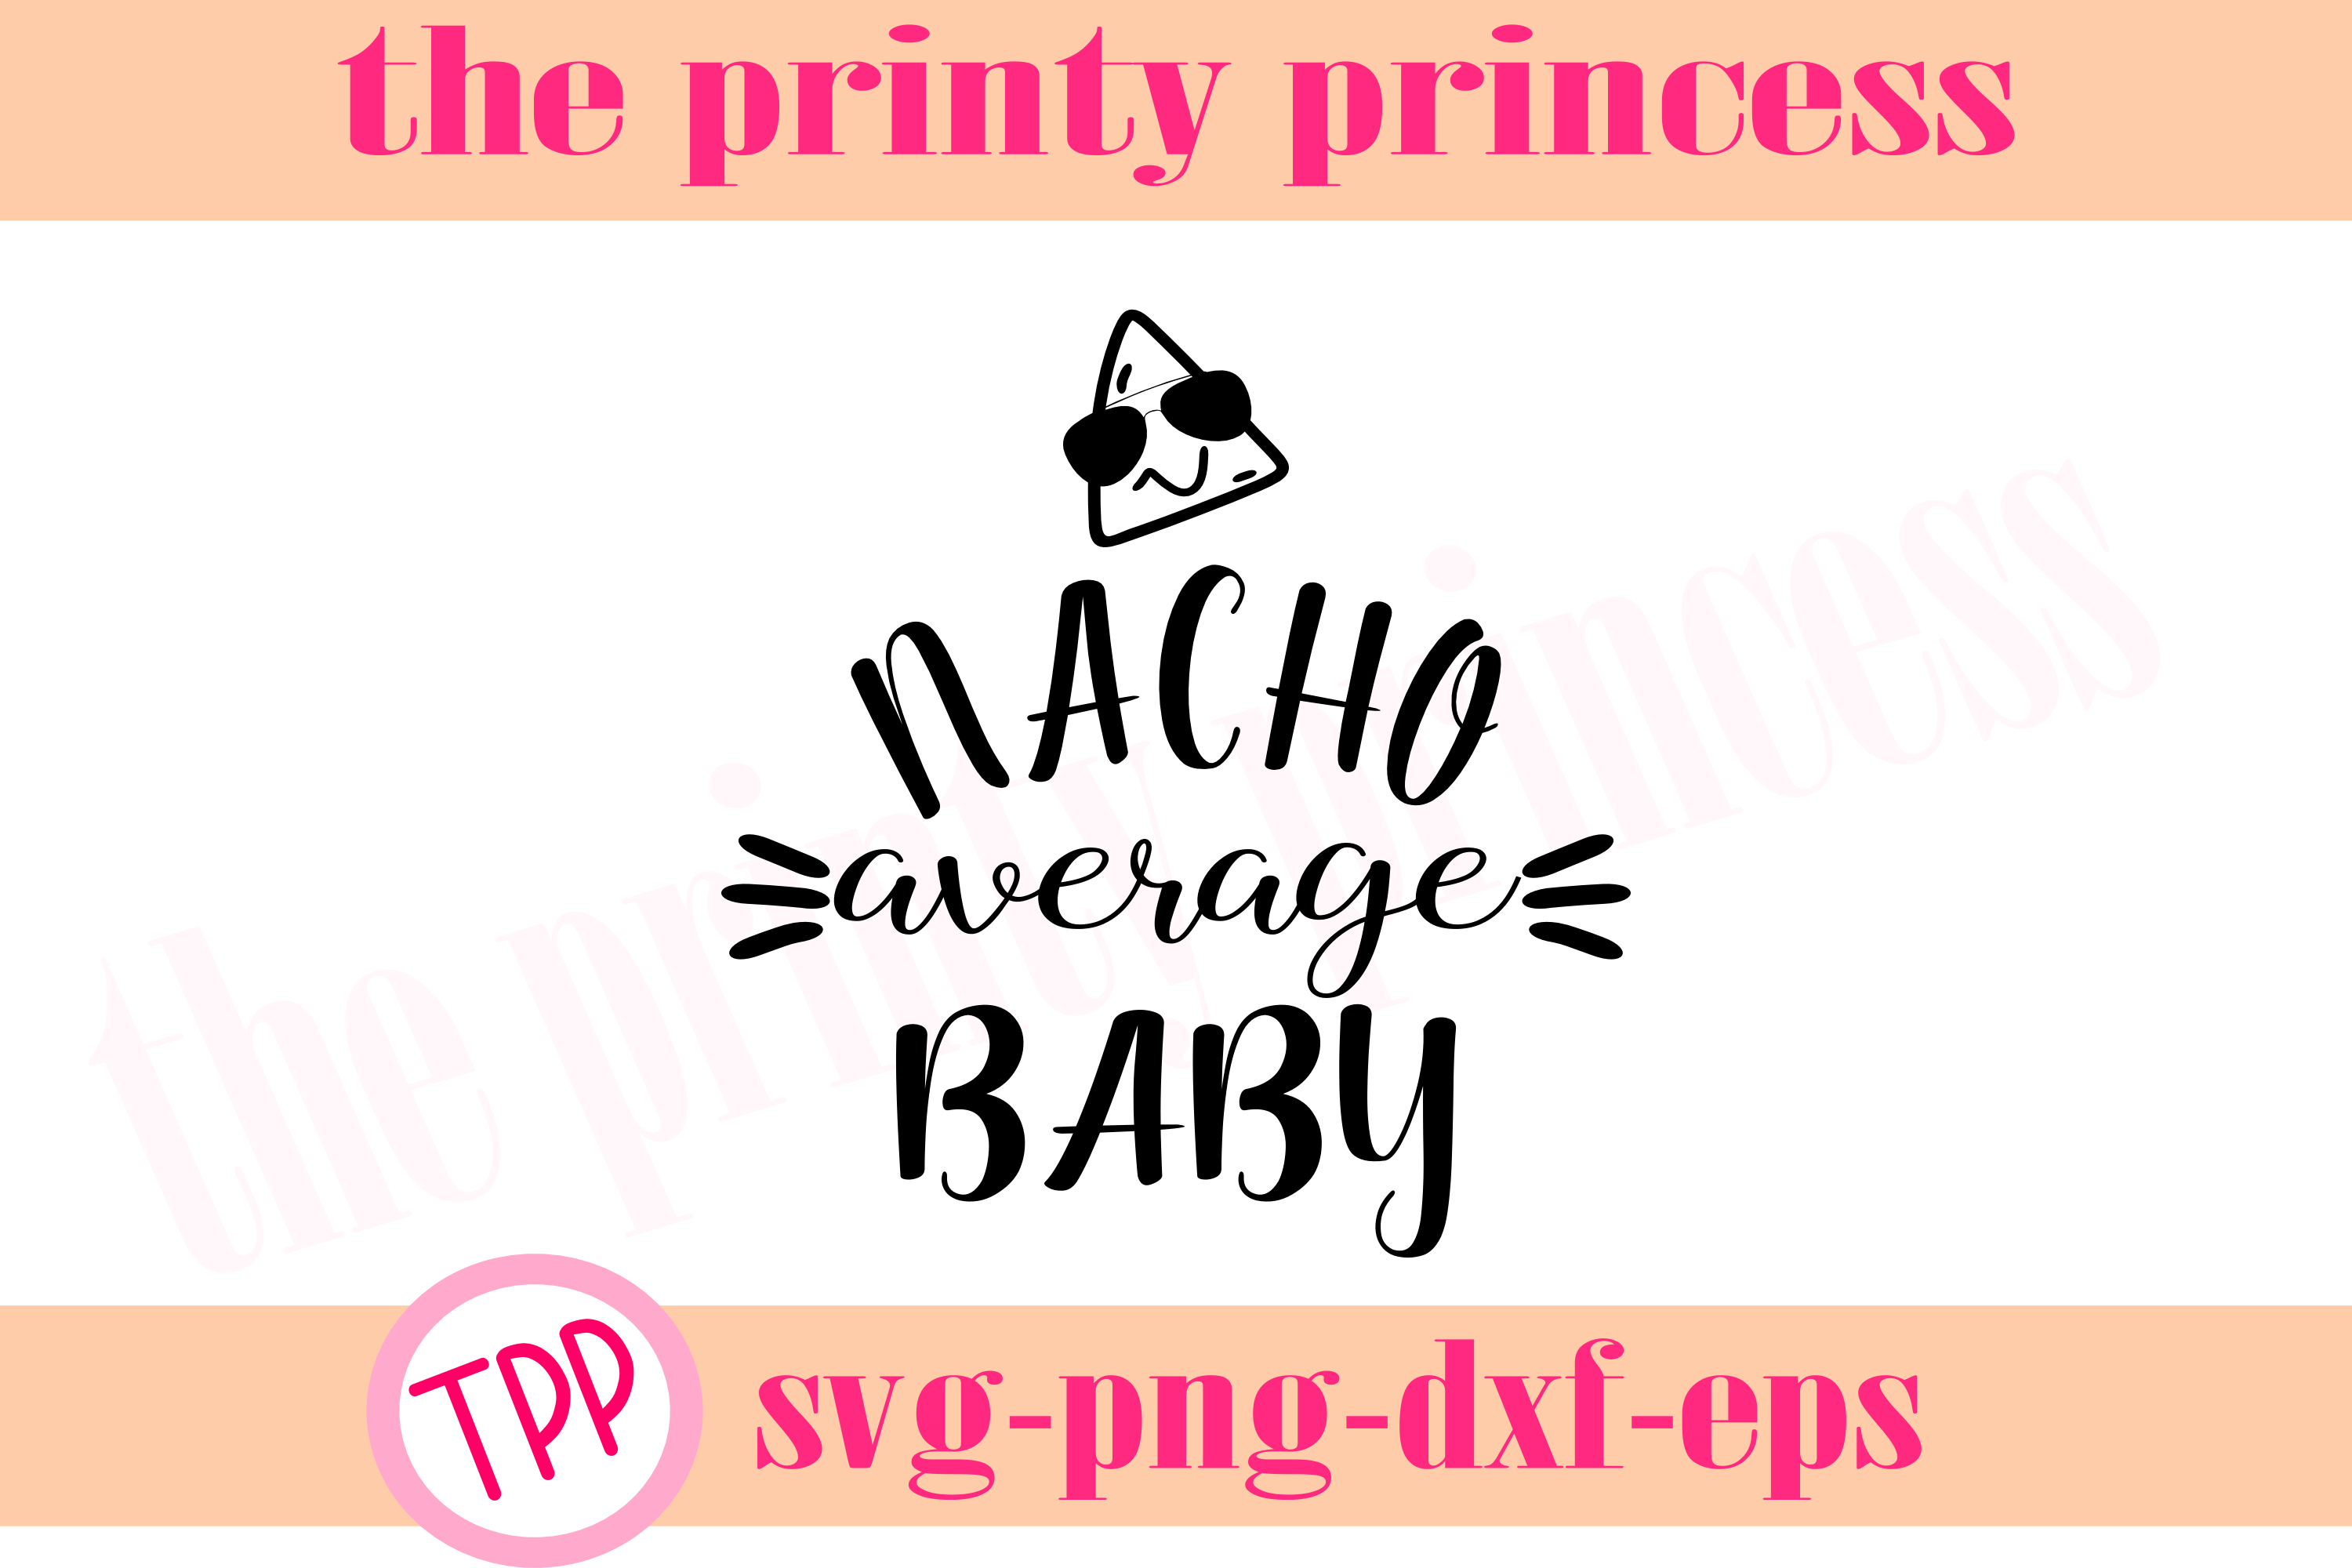 Nacho Average Baby svg, baby svg, nacho design file example image 2